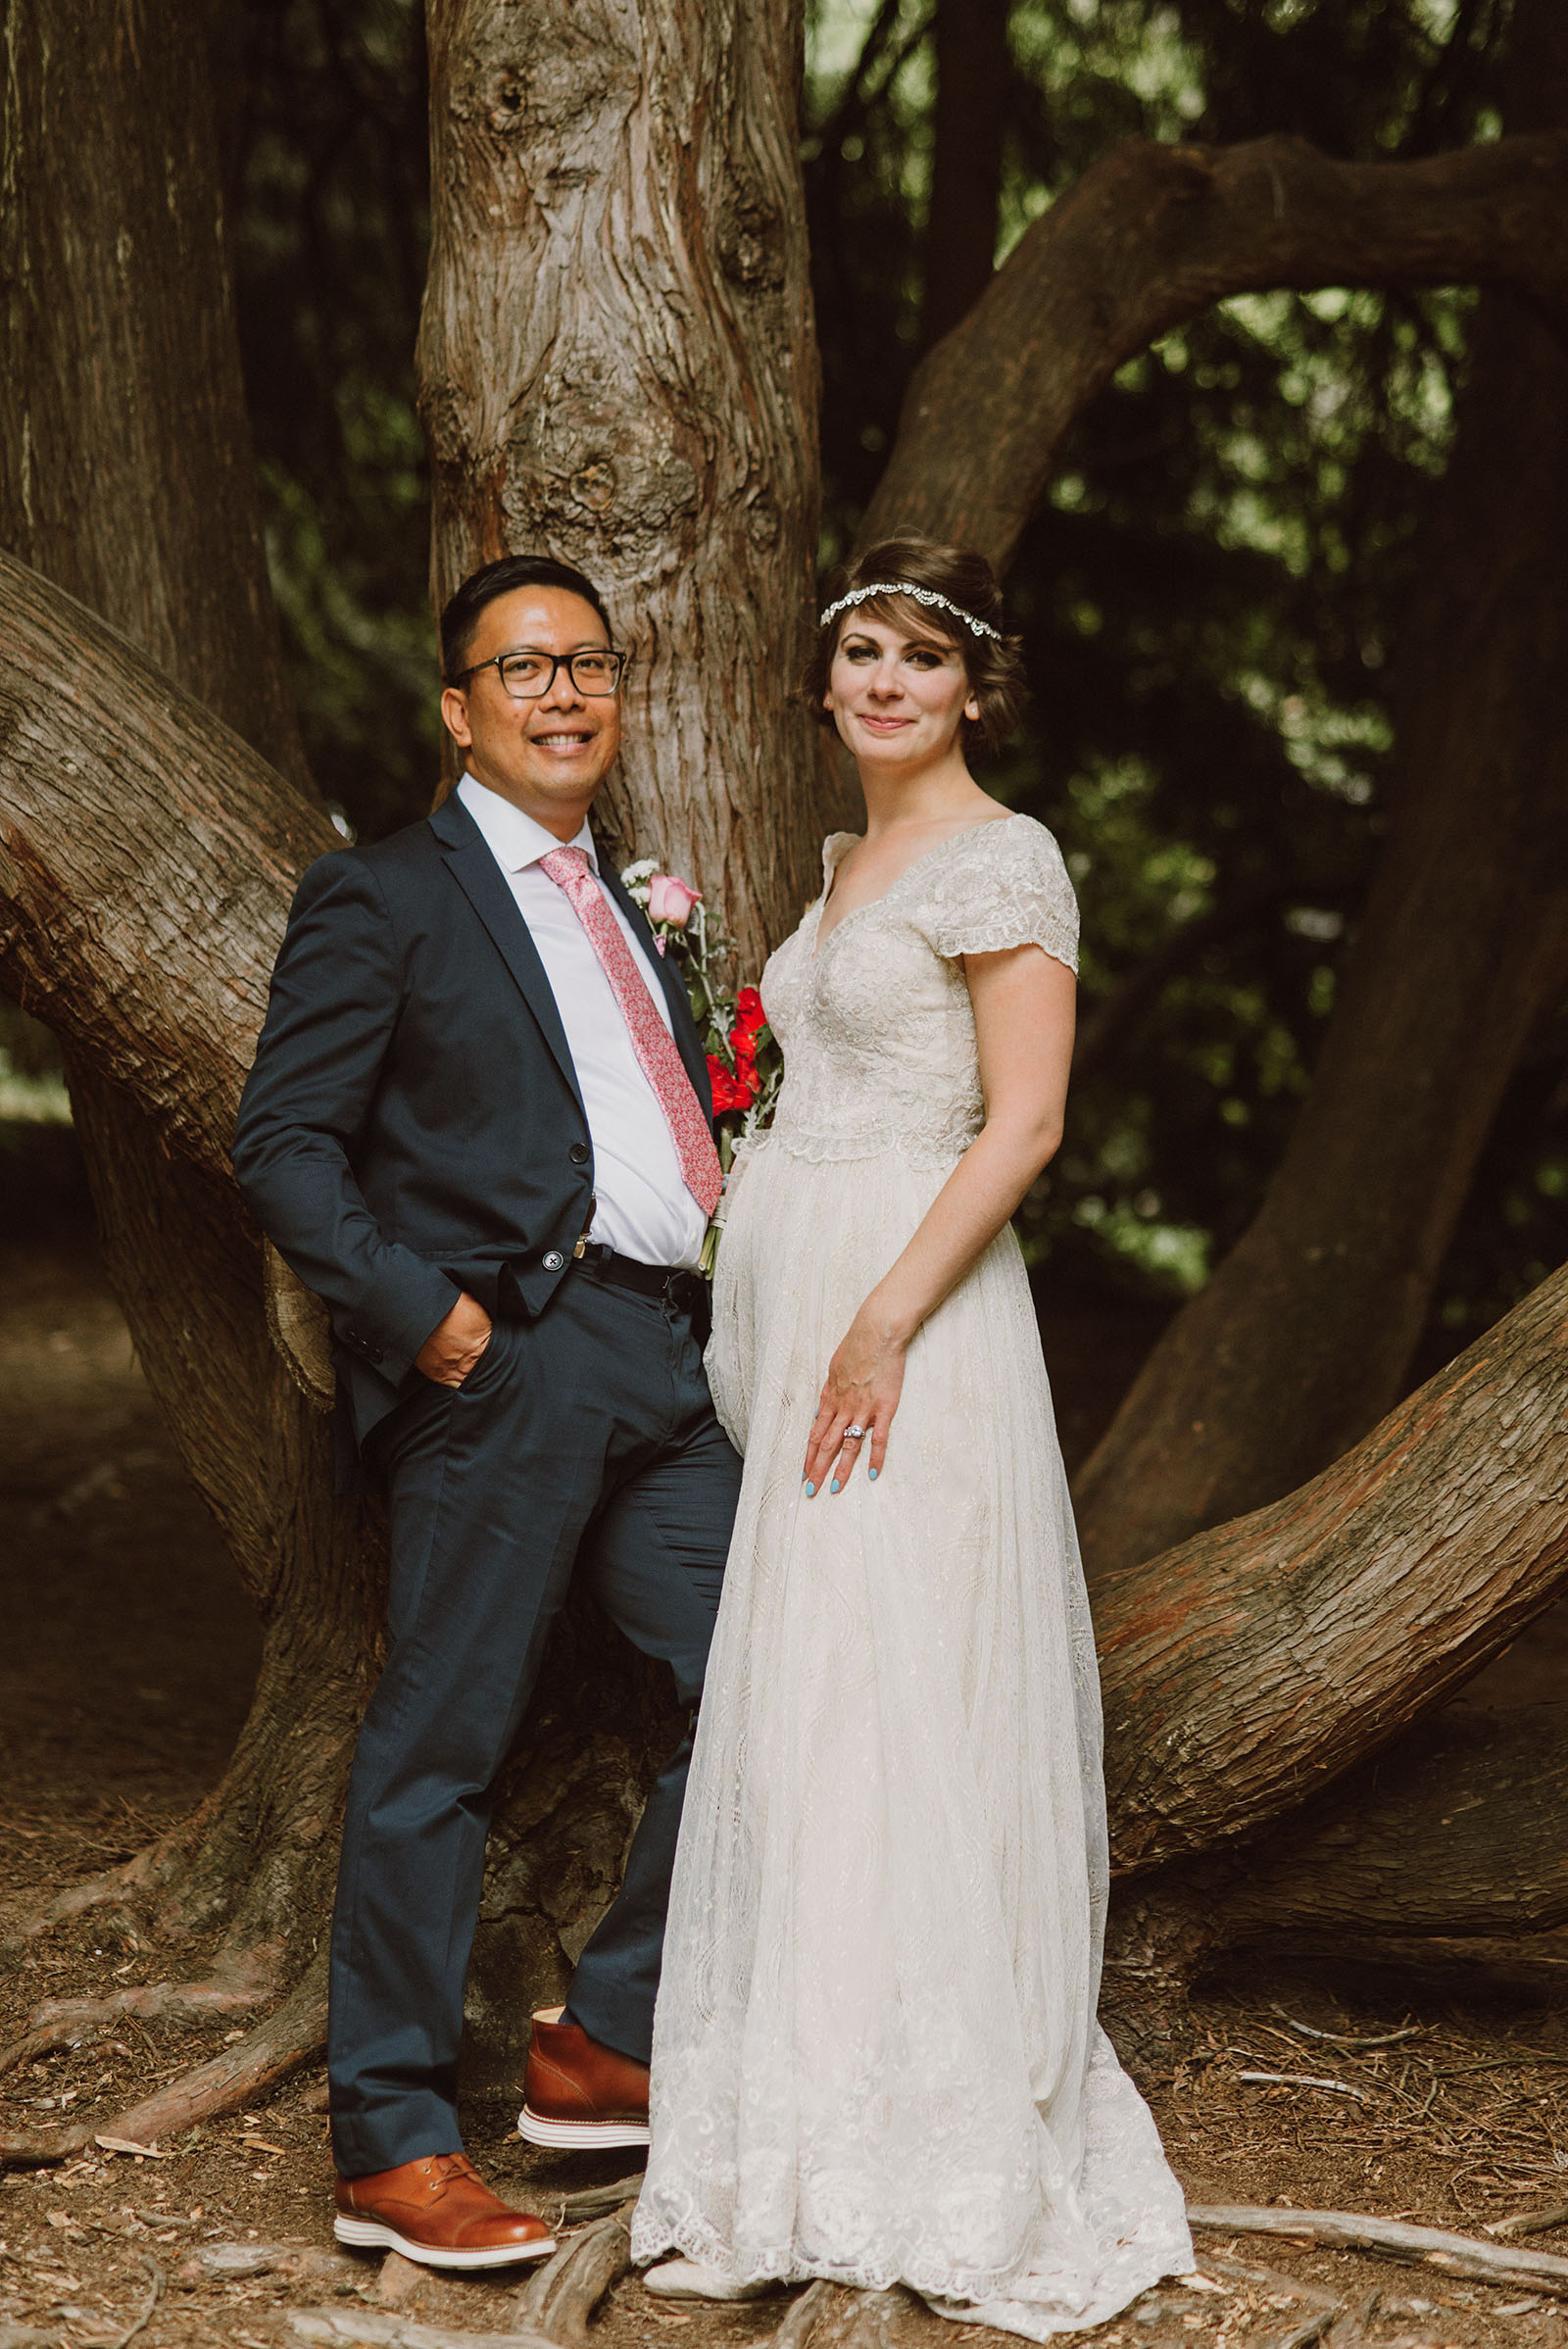 Bride and Groom portraits in Laurelhurst Park | Downtown Portland Elopement